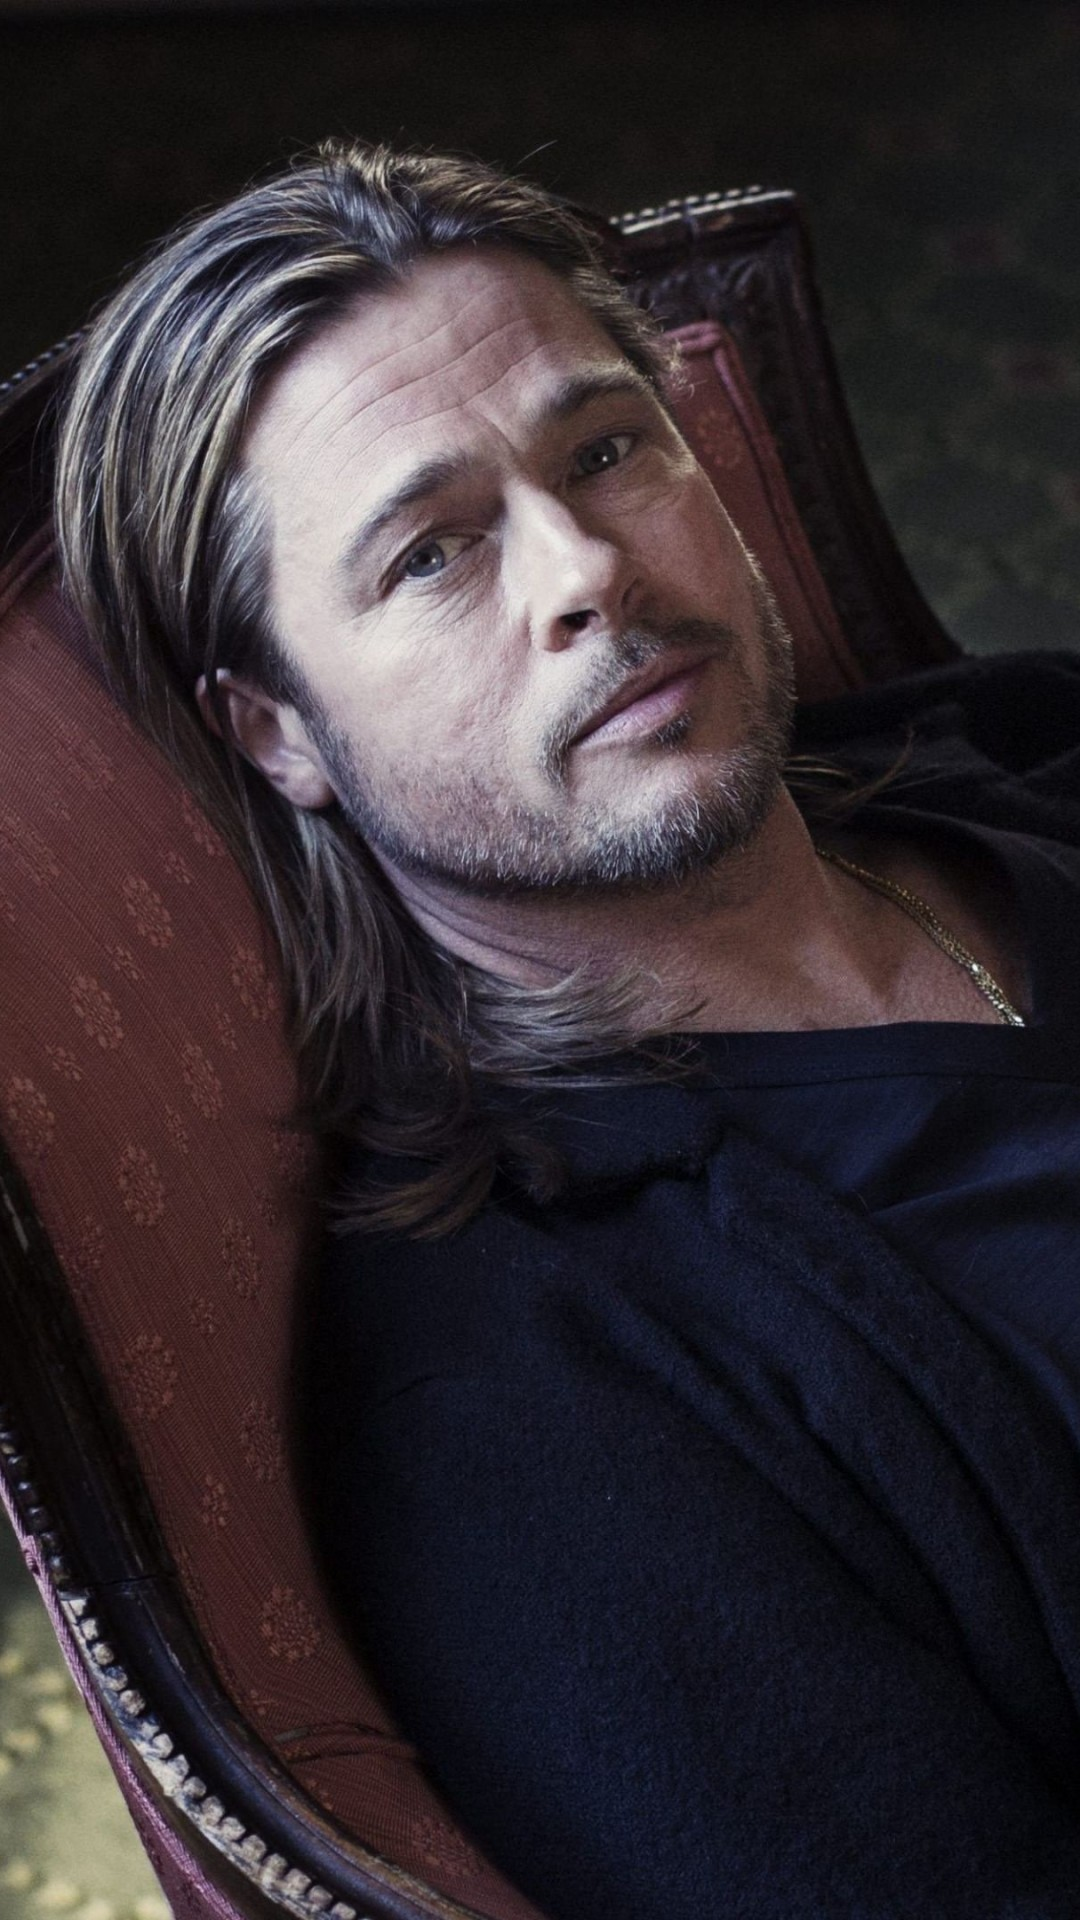 Brad Pitt Sitting On Chair Wallpaper for SONY Xperia Z2